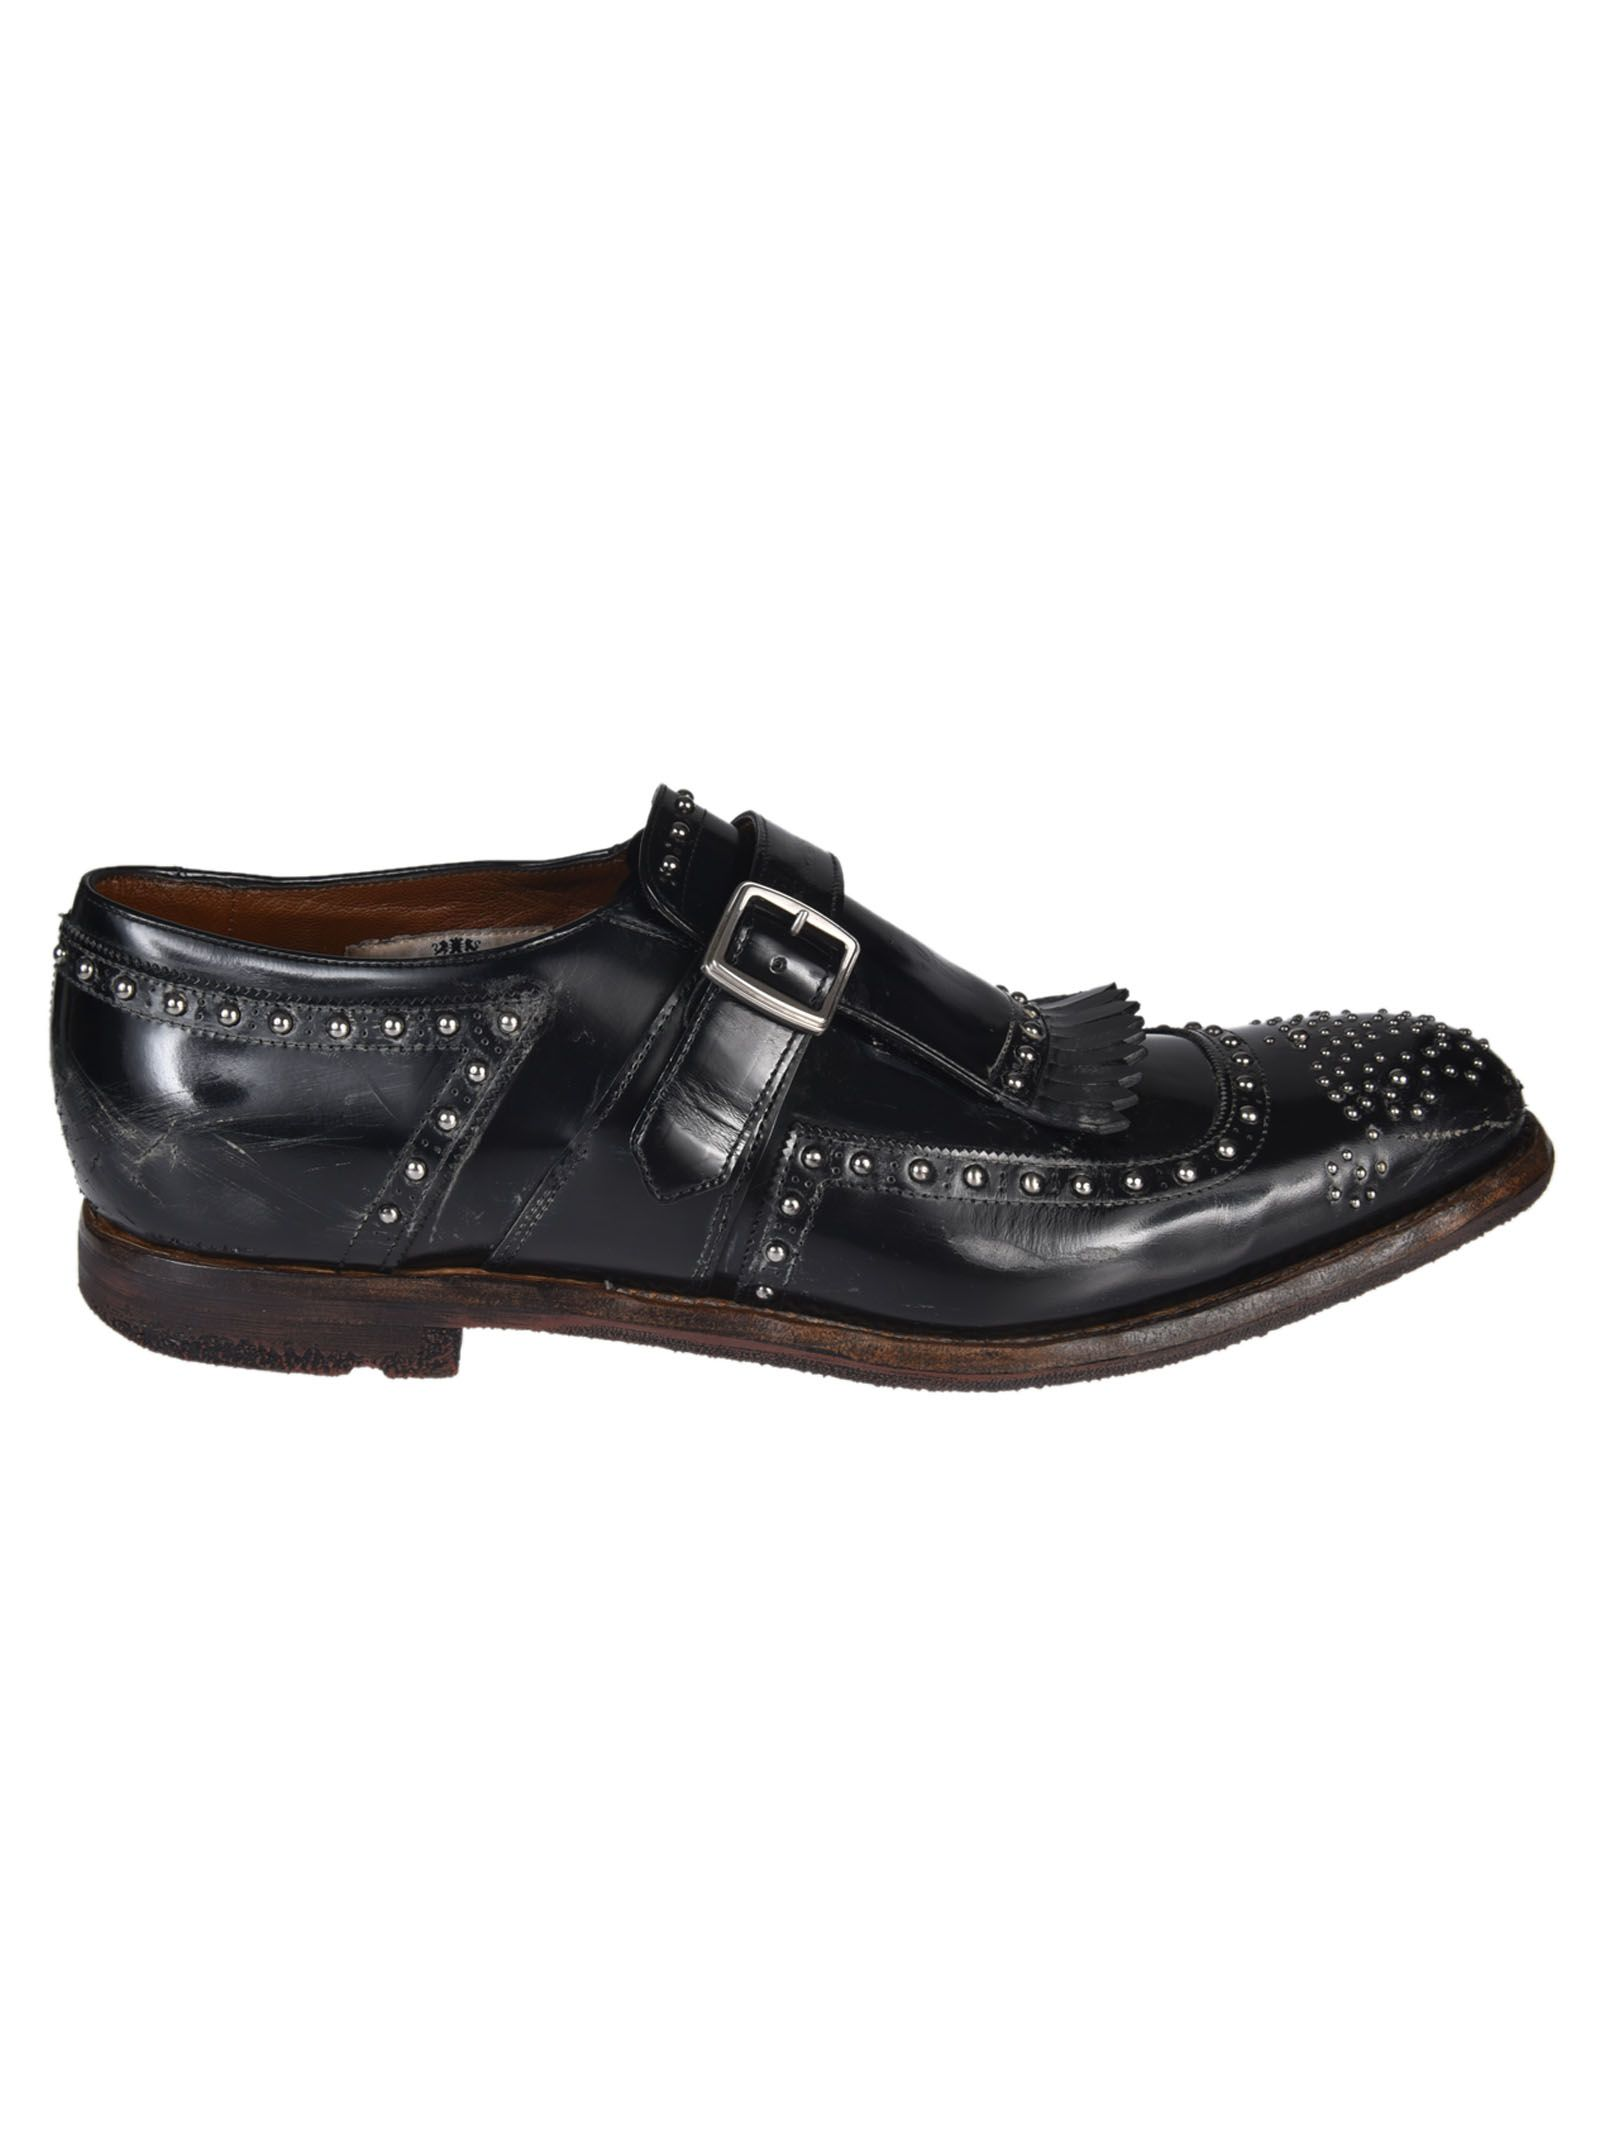 Churchs Studded Monk Shoes